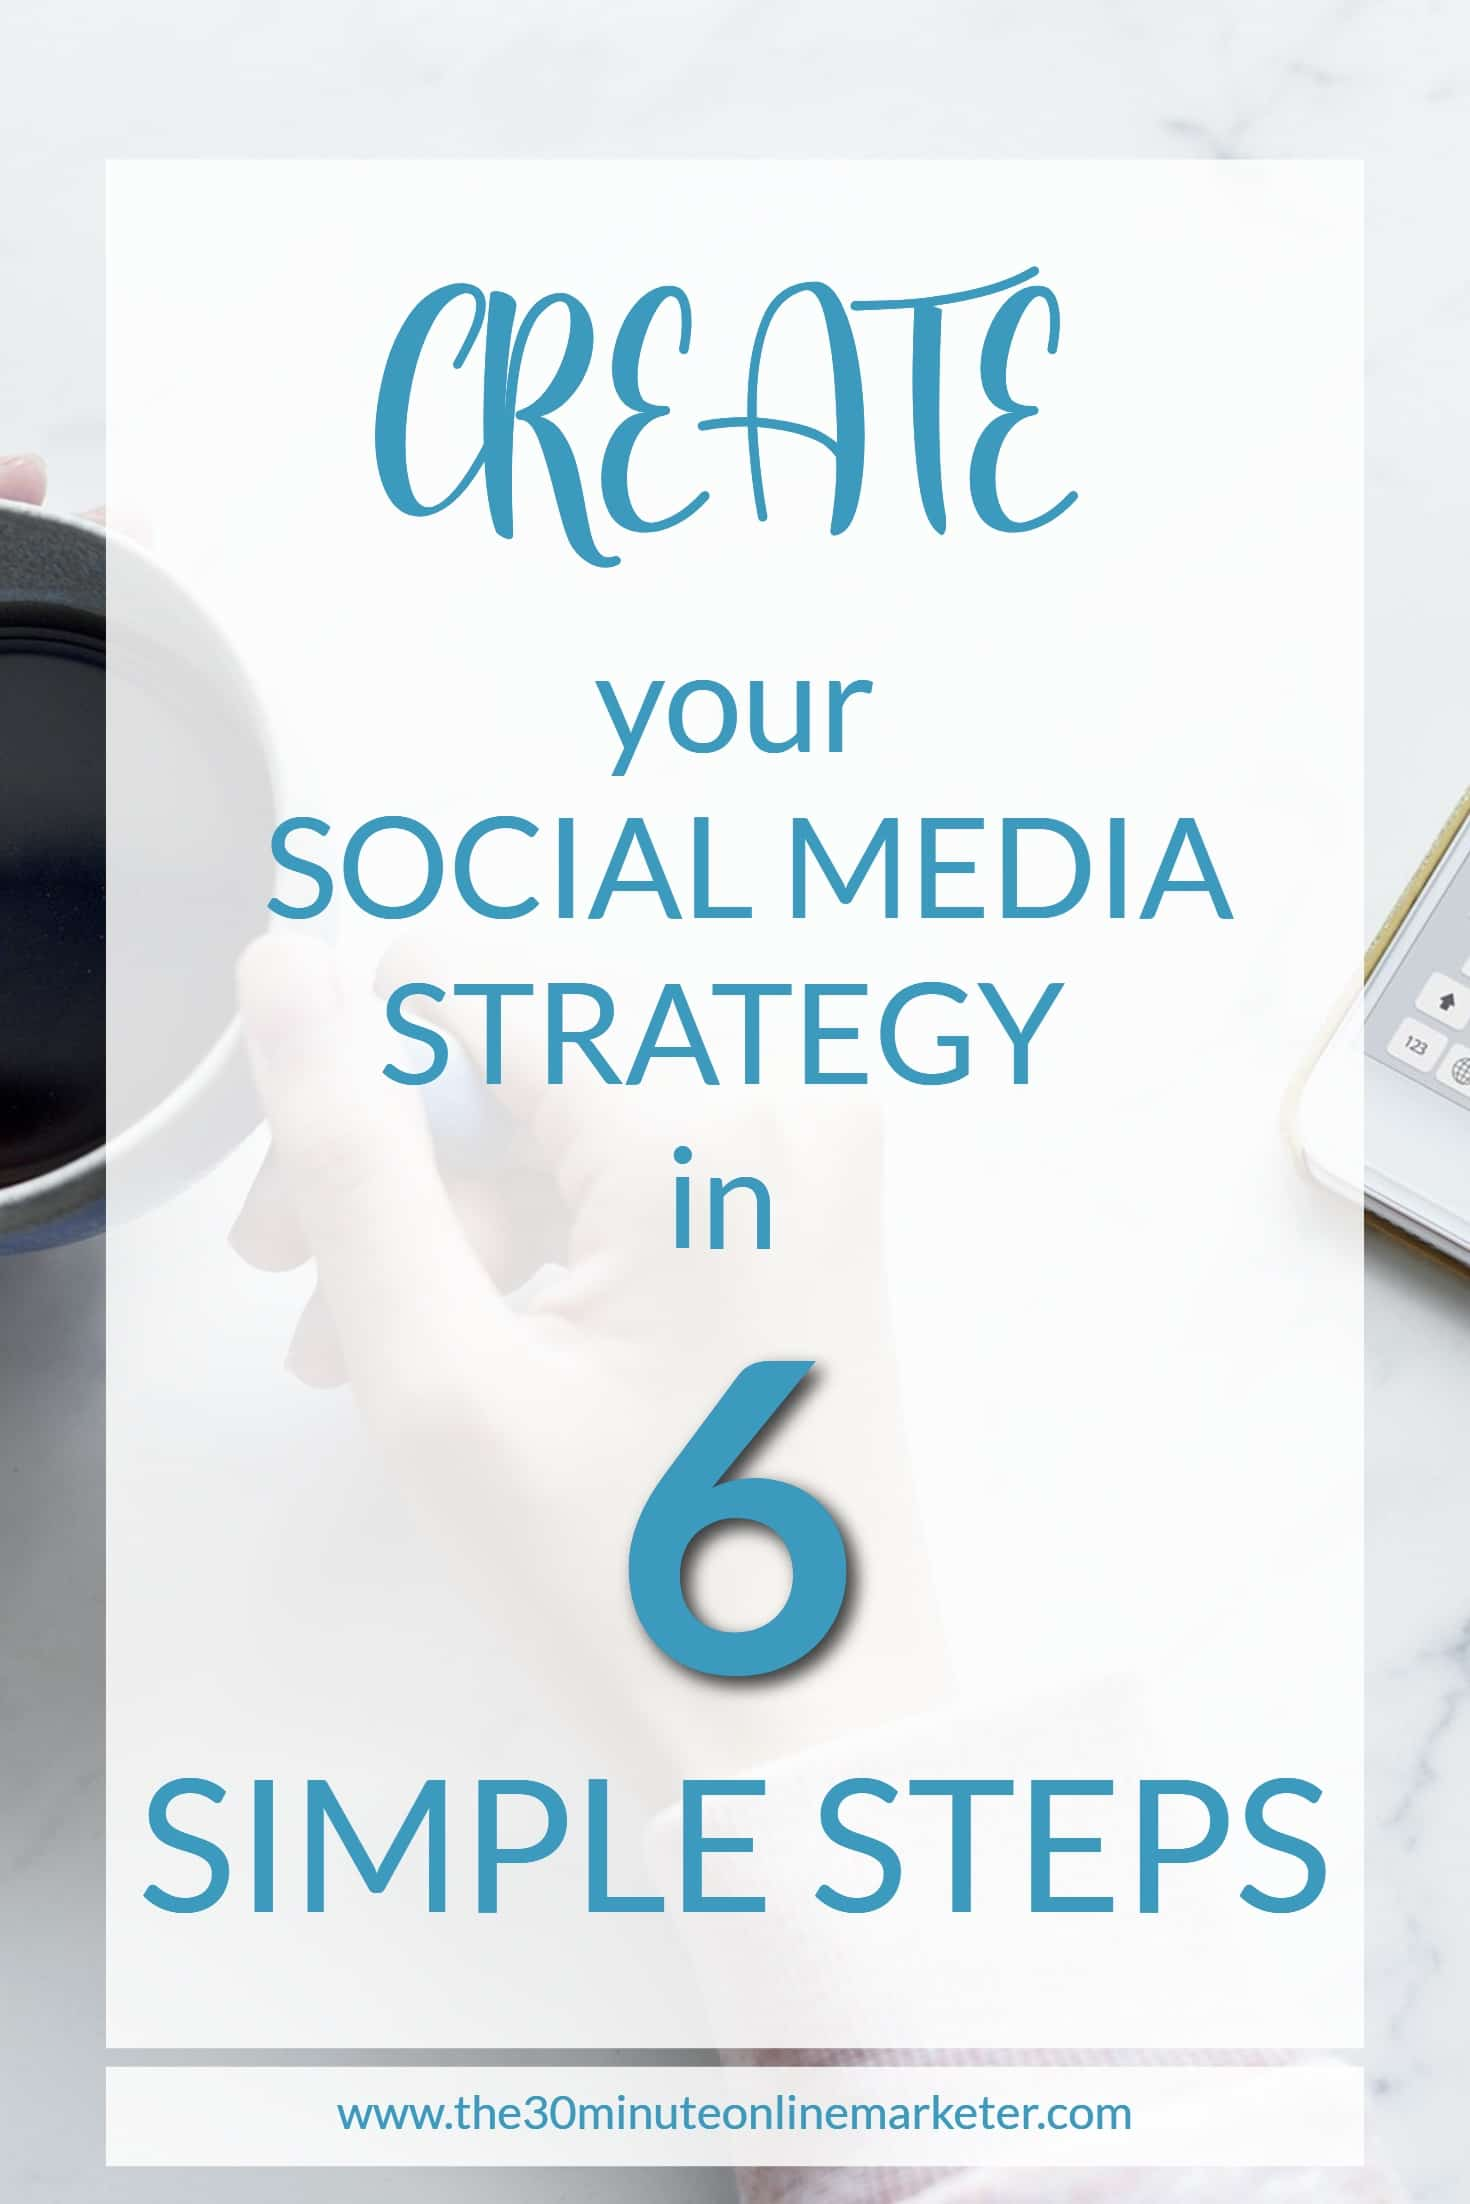 Create your social media strategy in 6 simple steps